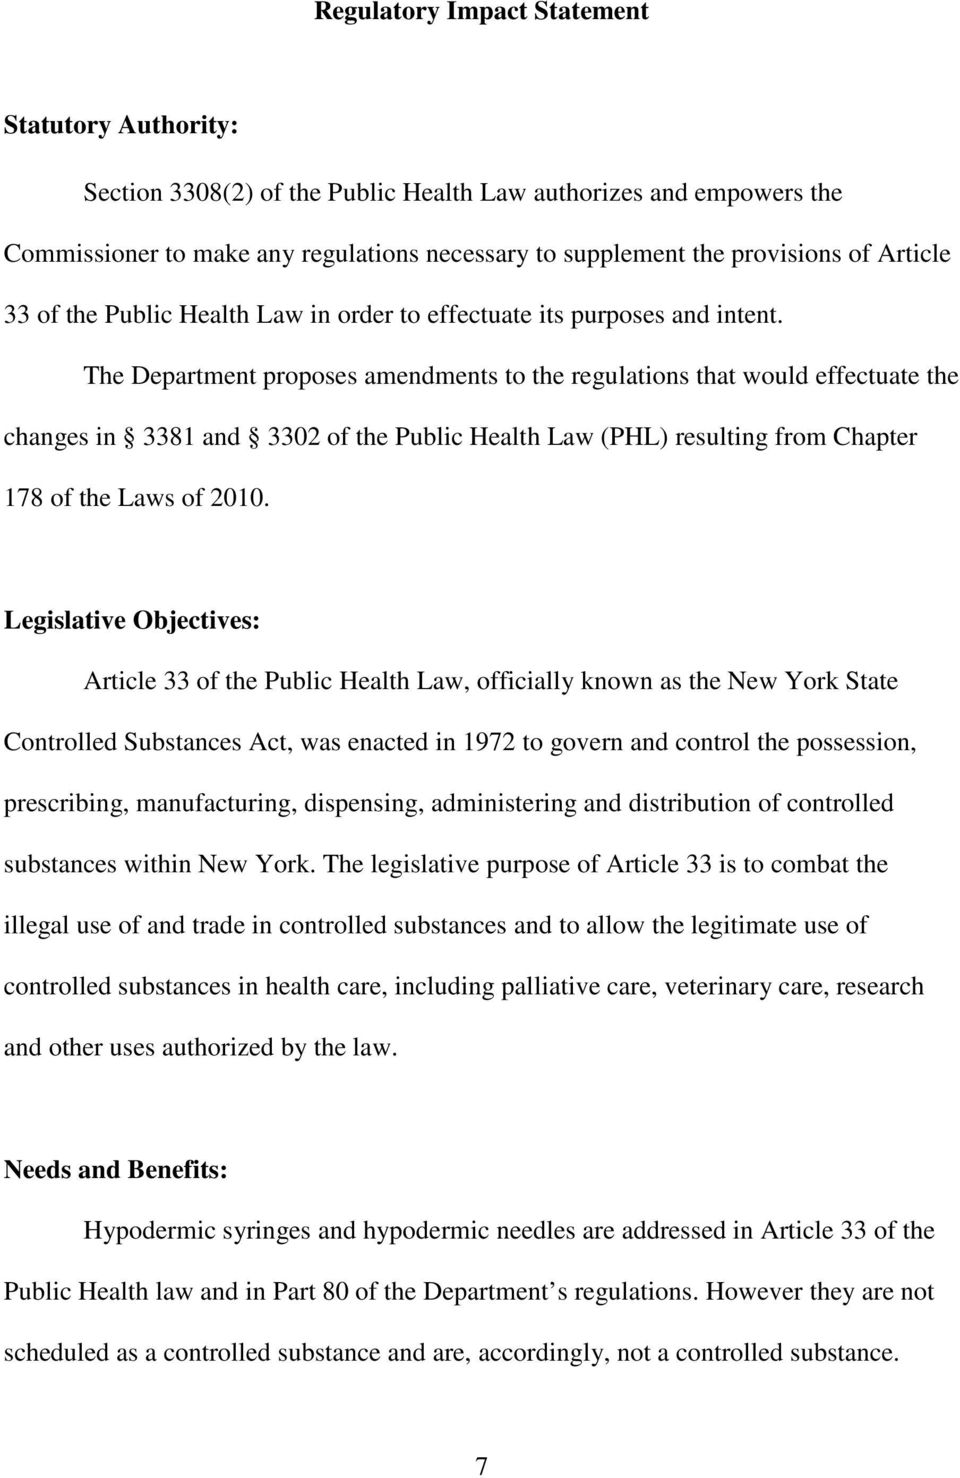 The Department proposes amendments to the regulations that would effectuate the changes in 3381 and 3302 of the Public Health Law (PHL) resulting from Chapter 178 of the Laws of 2010.